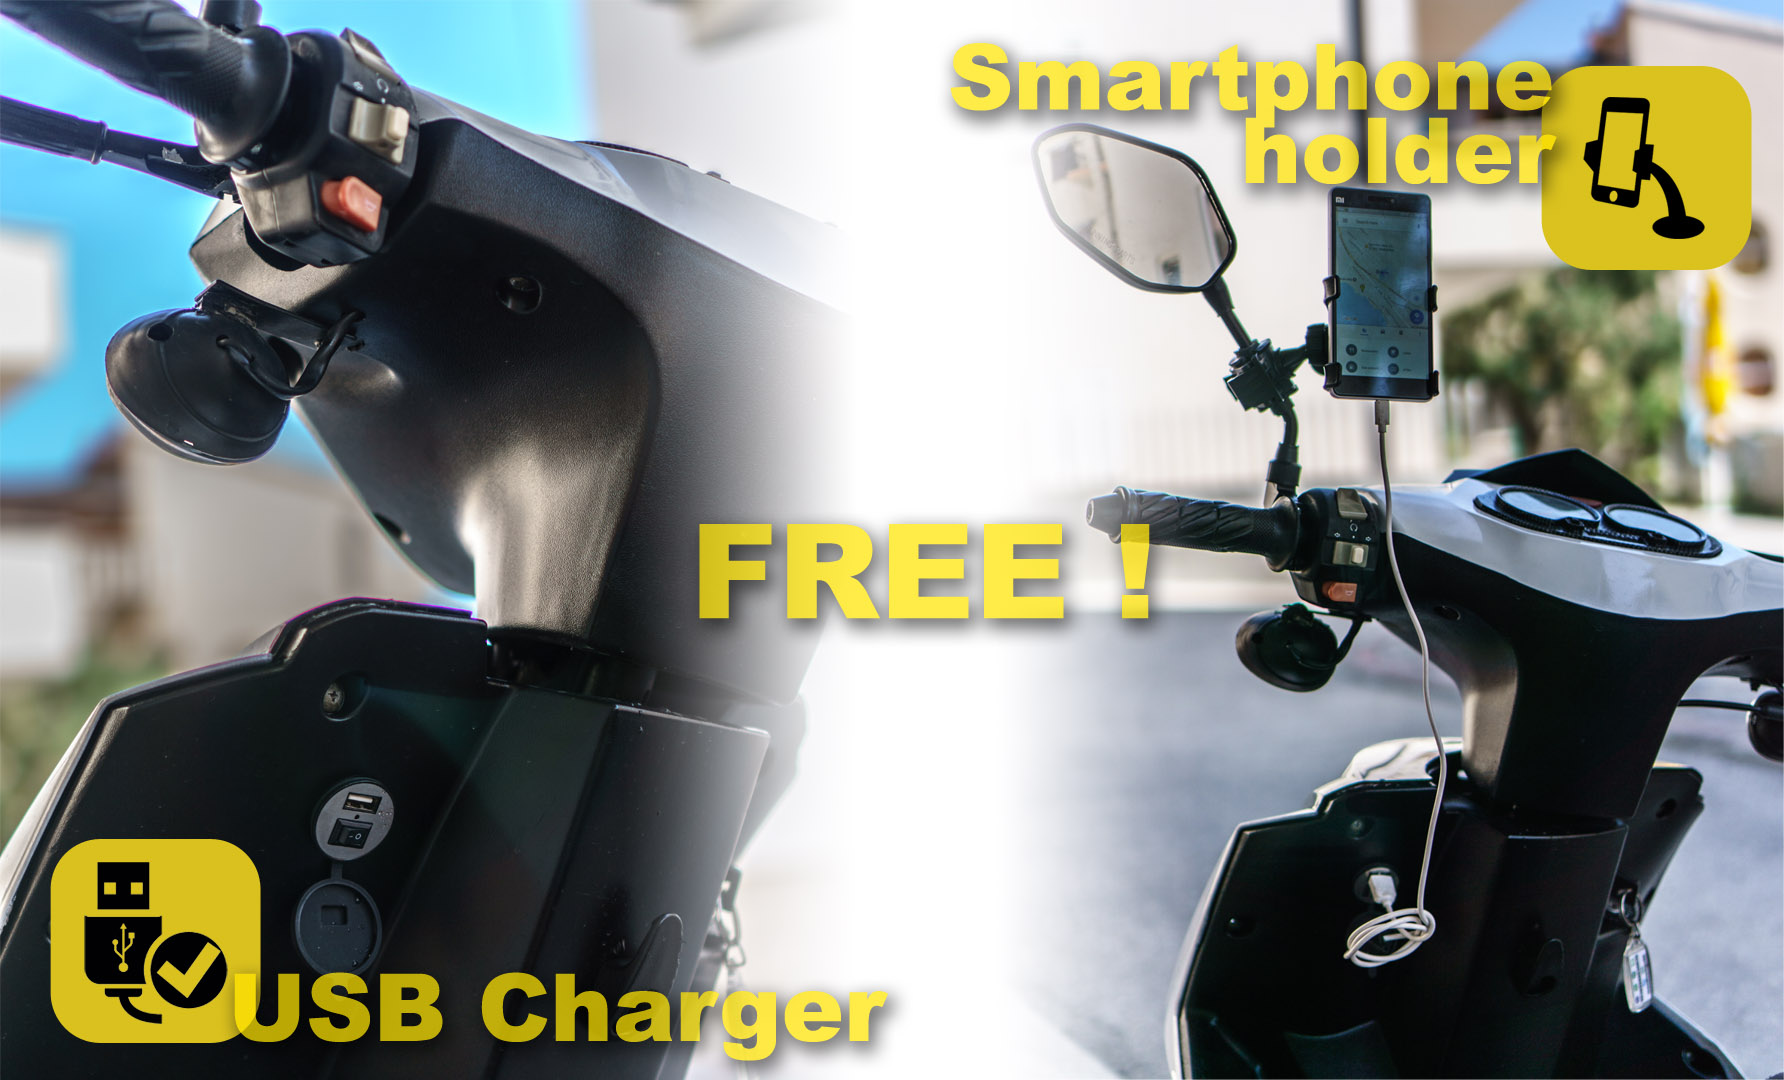 free smartphone holder and usb charger at renting a scooter makarska